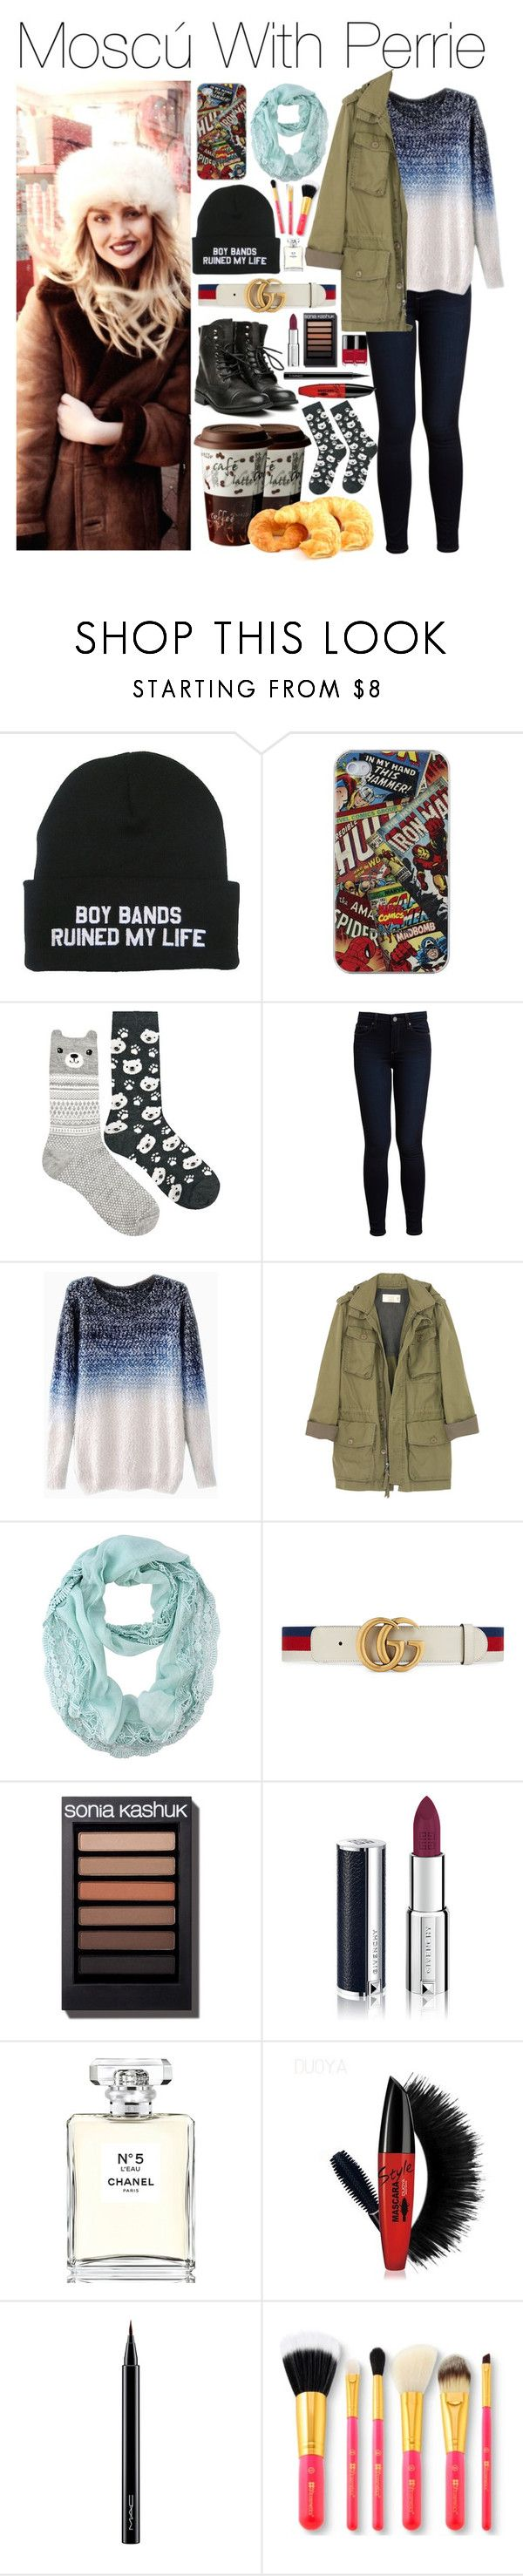 """""""Moscú With Perrie"""" by lovingharryandjustin ❤ liked on Polyvore featuring Marvel Comics, Oysho, Paige Denim, J.Crew, Gucci, Givenchy, Chanel, MAC Cosmetics, Winter and perrie"""